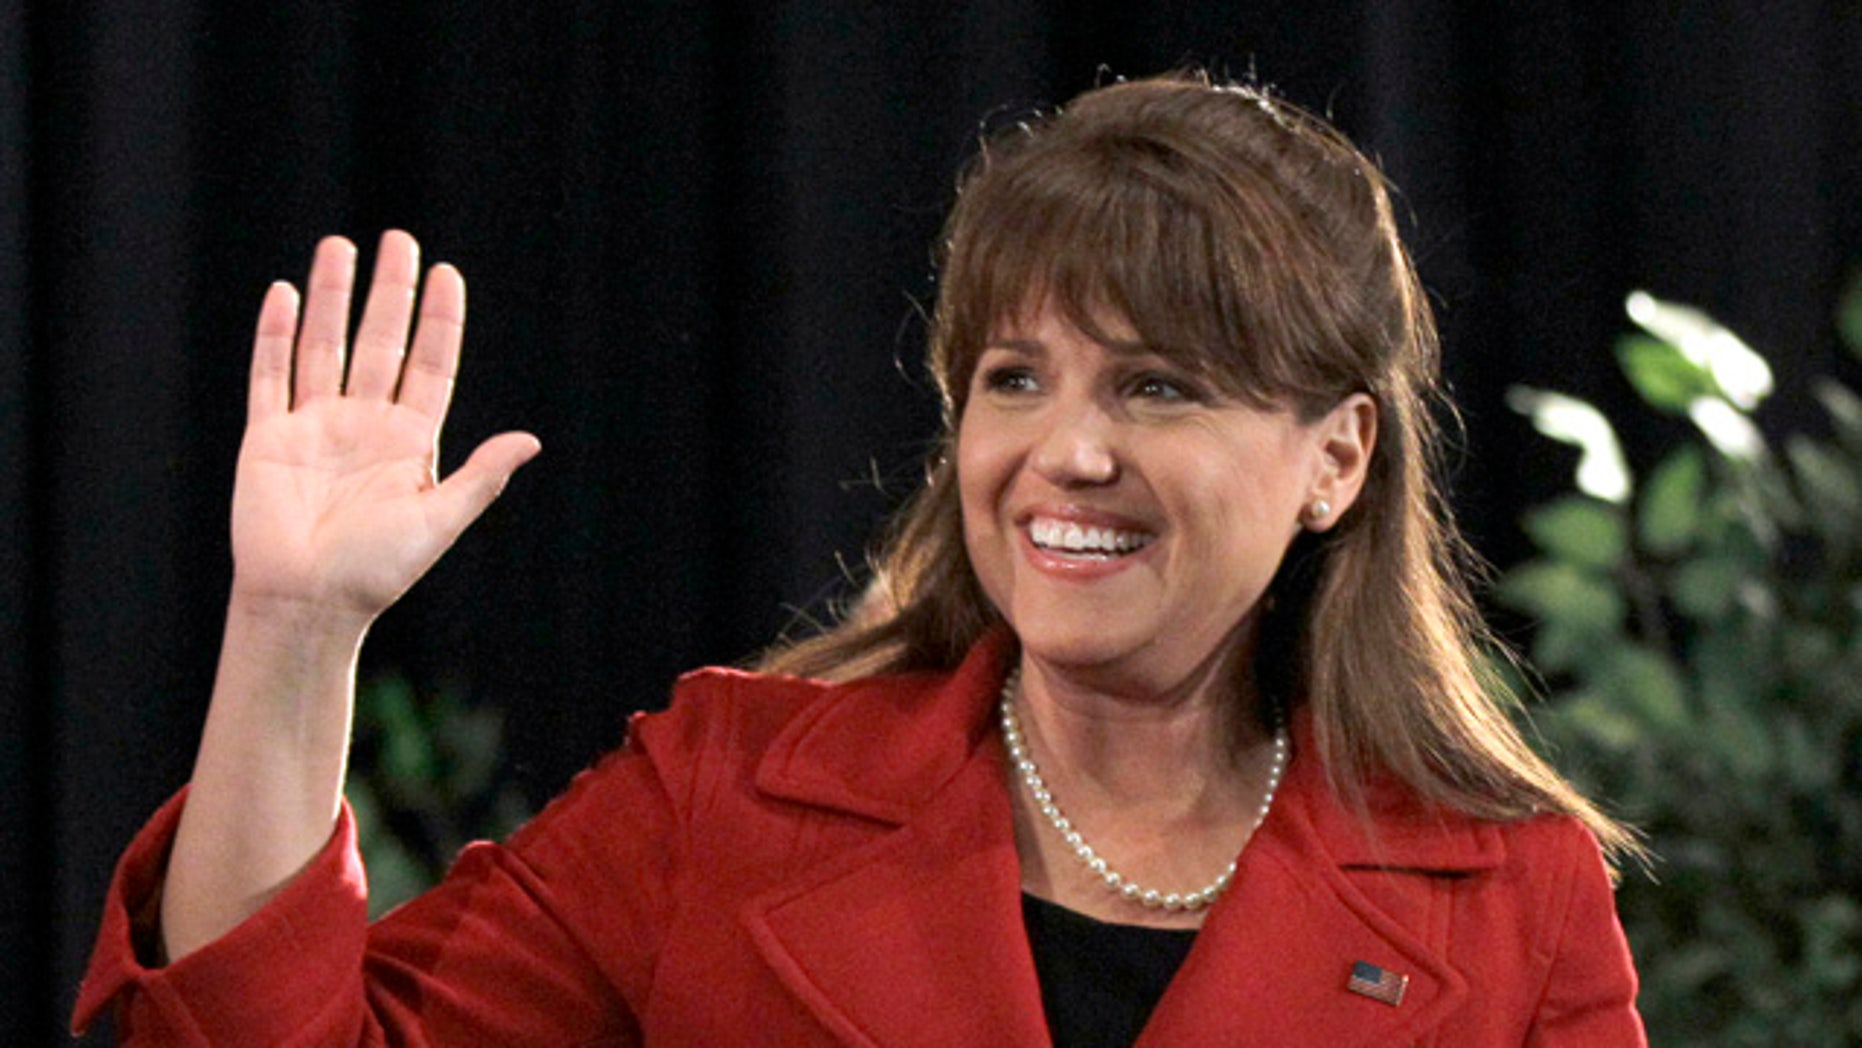 Former Delaware Senate candidate Christine O'Donnell, shown here in a Nov. 2 file photo, is forming an issues-oriented political action committee.